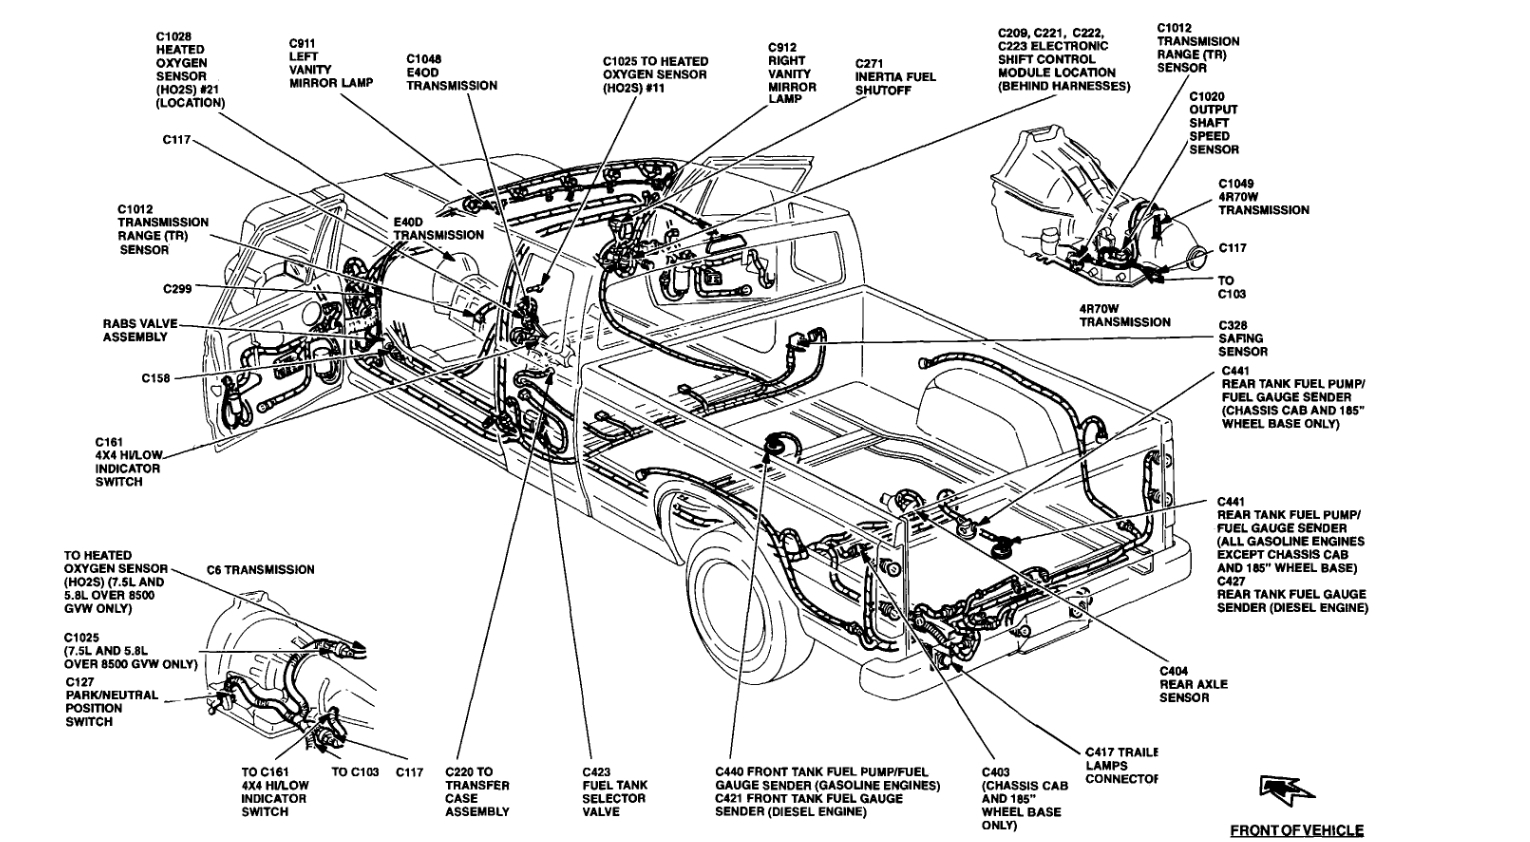 Sel Fuel System Wiring Diagram | Repair Manual F Sel Fuel Wiring Diagram on